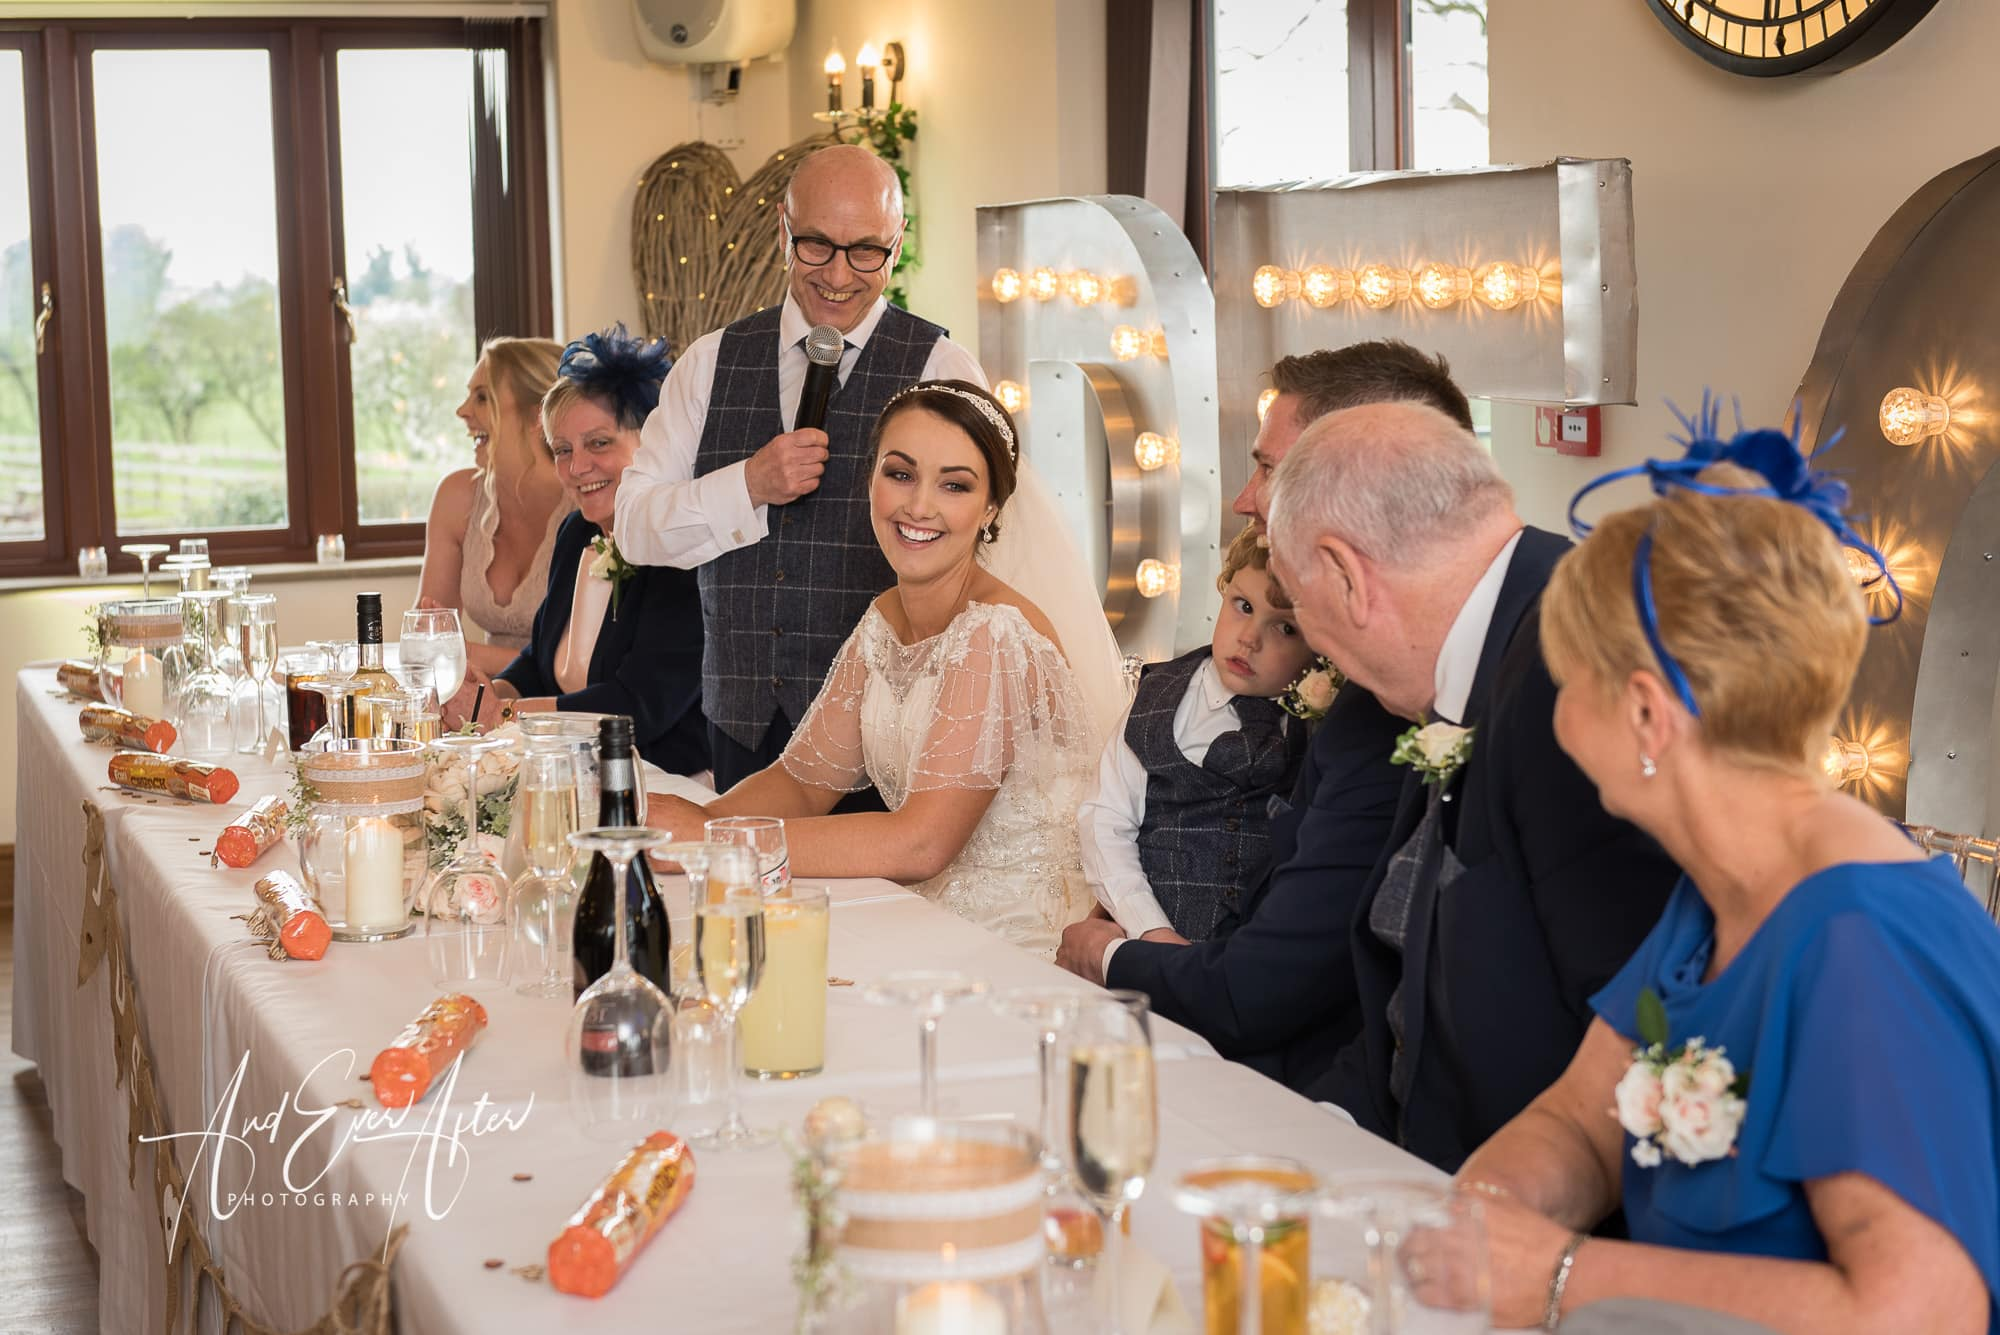 wedding day speeches, father of the bride